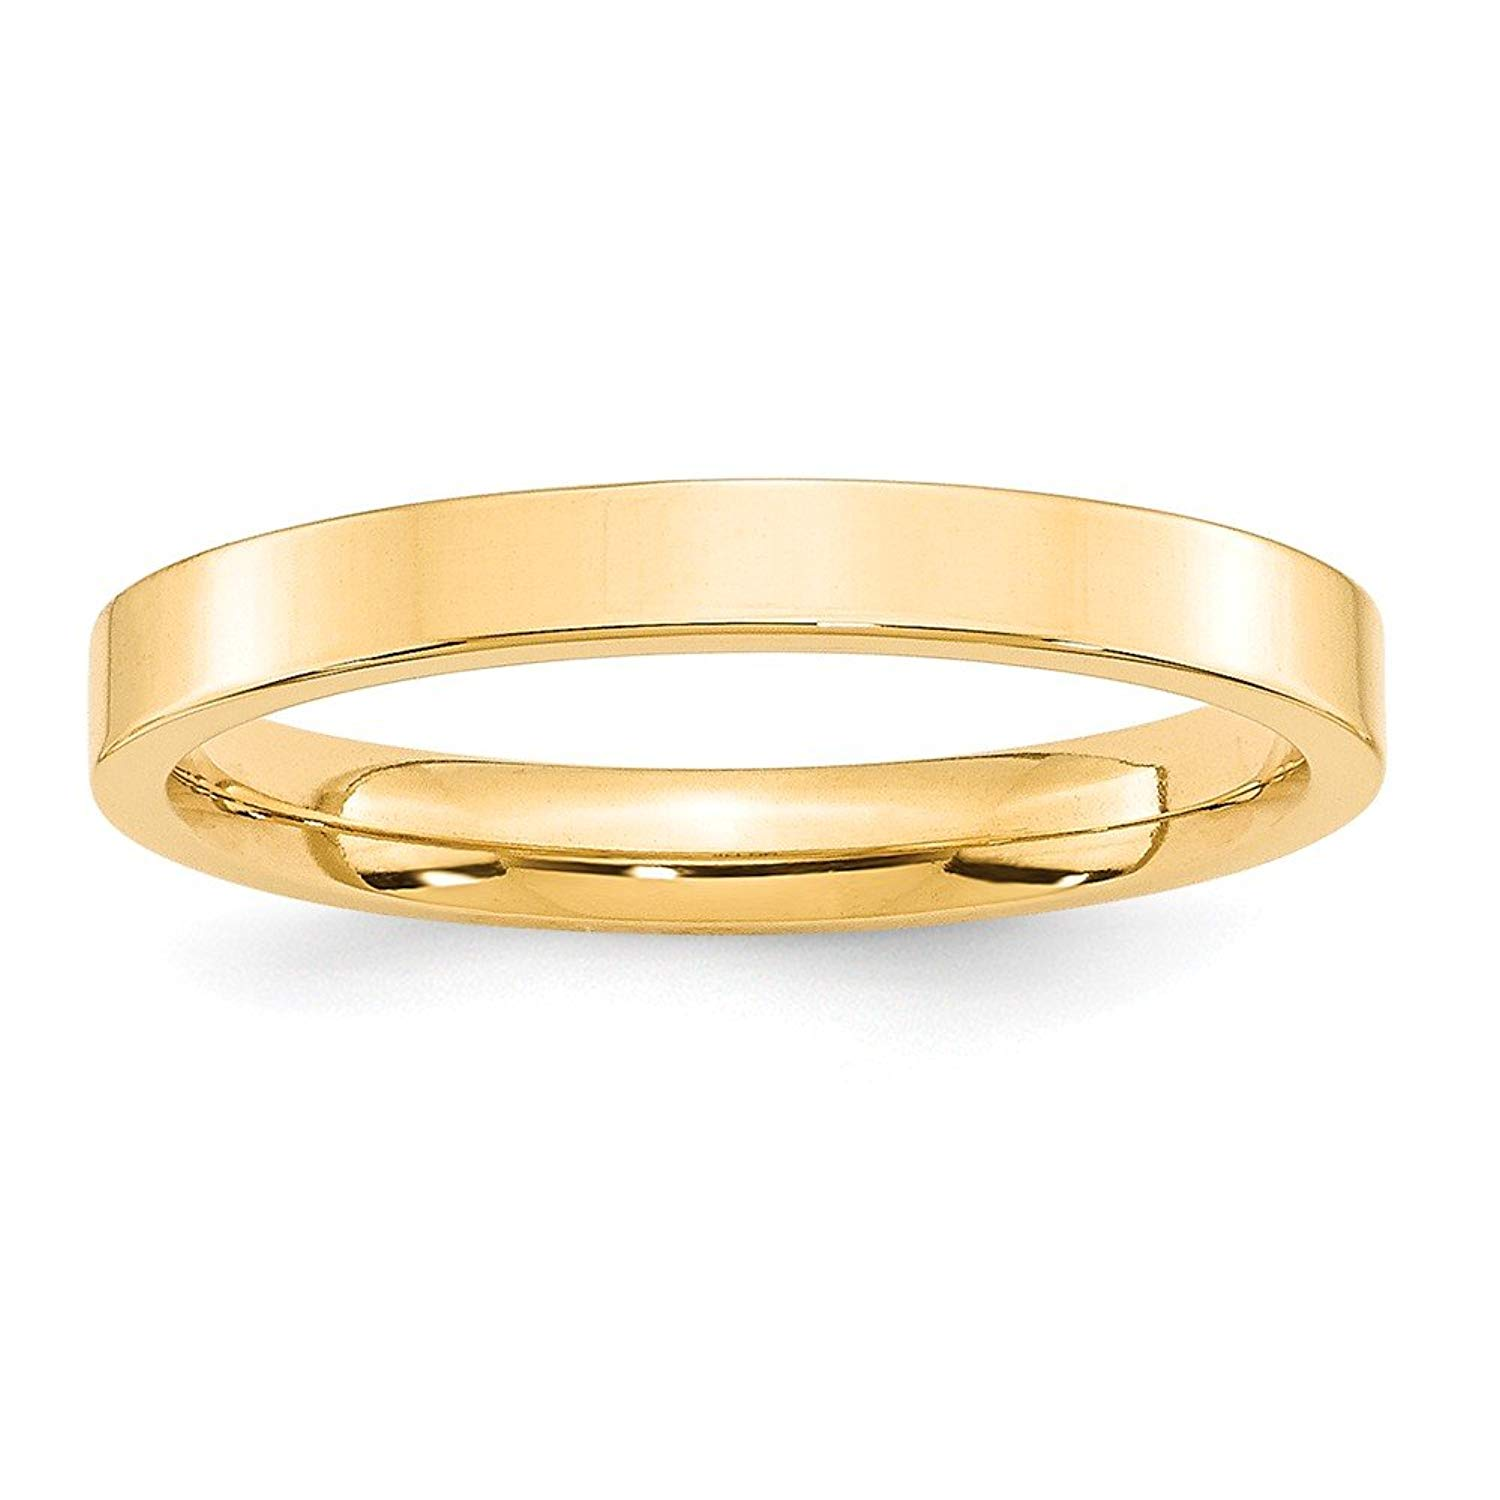 Perfect Jewelry Gift 14KY 3mm Standard Flat Comfort Fit Band Size 9